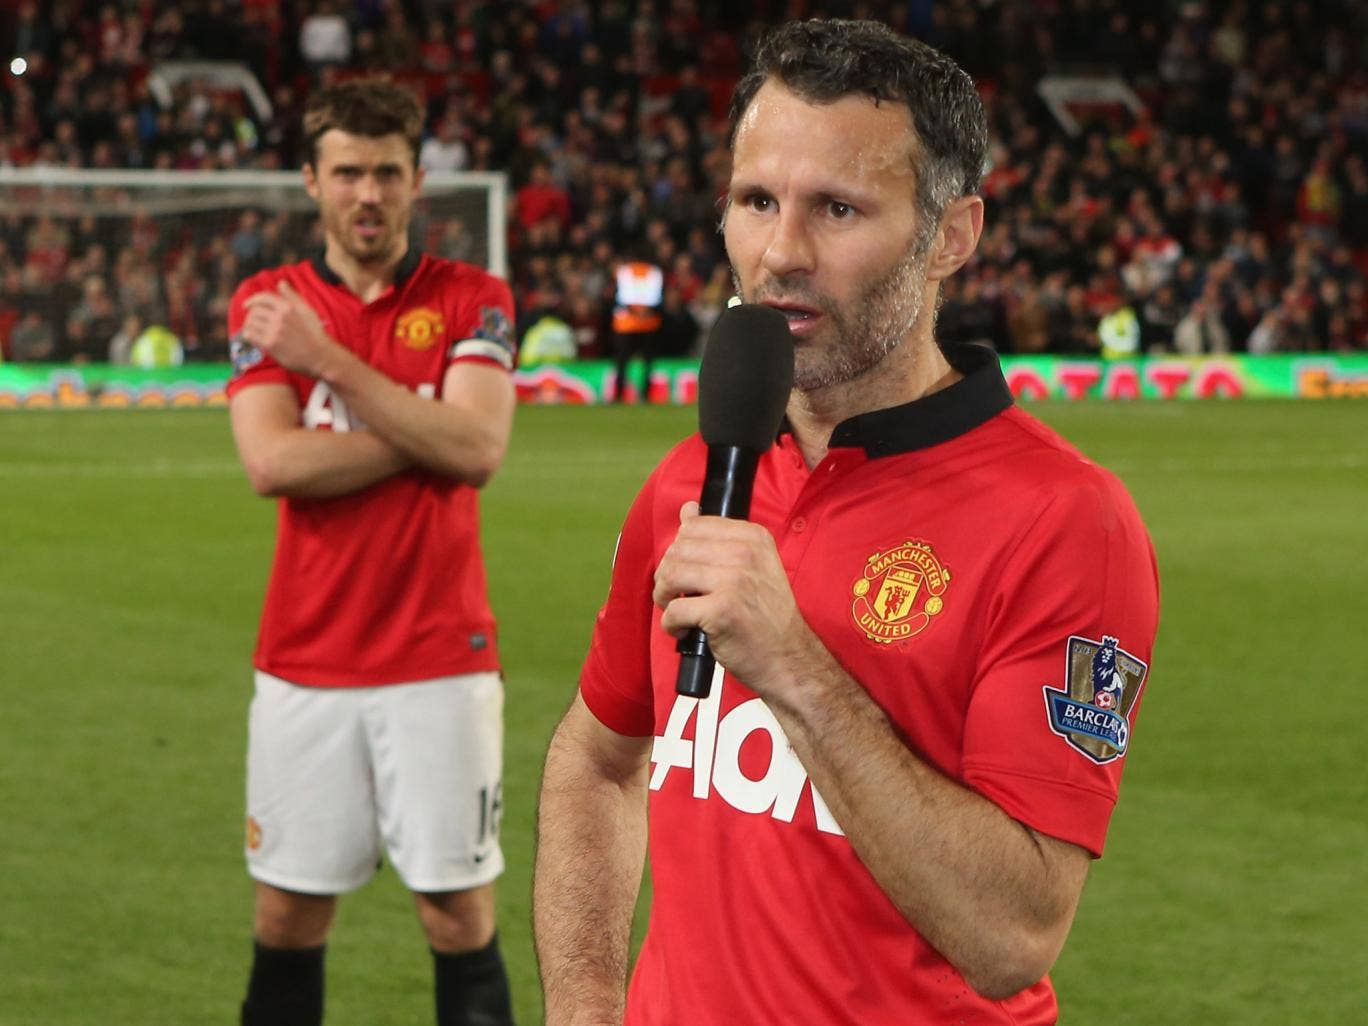 Ryan Giggs addresses the Old Trafford crowd after United's 3-1 win over Hull